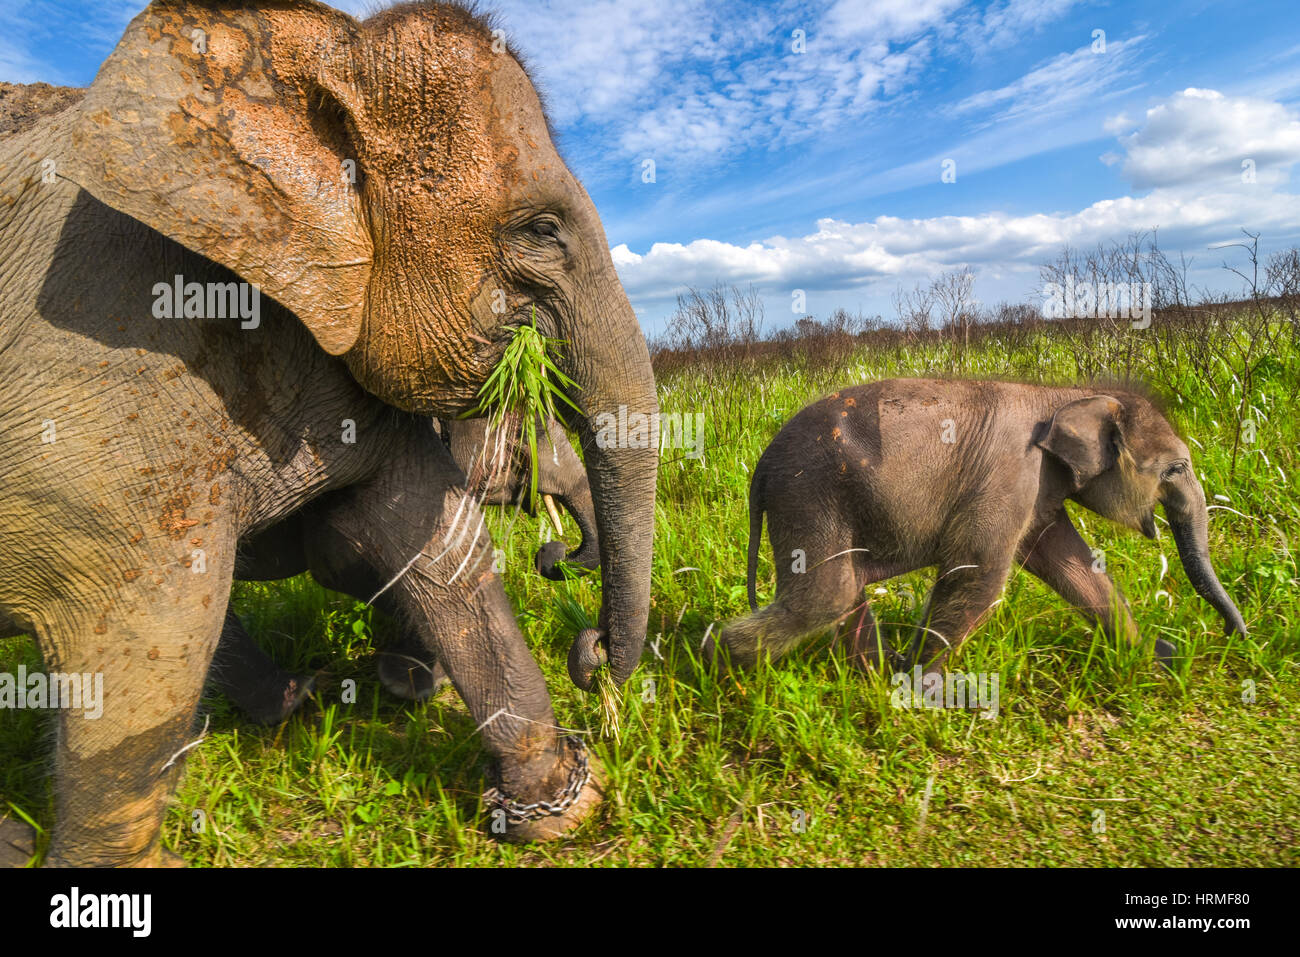 A Sumatran elephant baby walks in front of its herd in the grazing land of Way Kambas National Park, Indonesia. - Stock Image